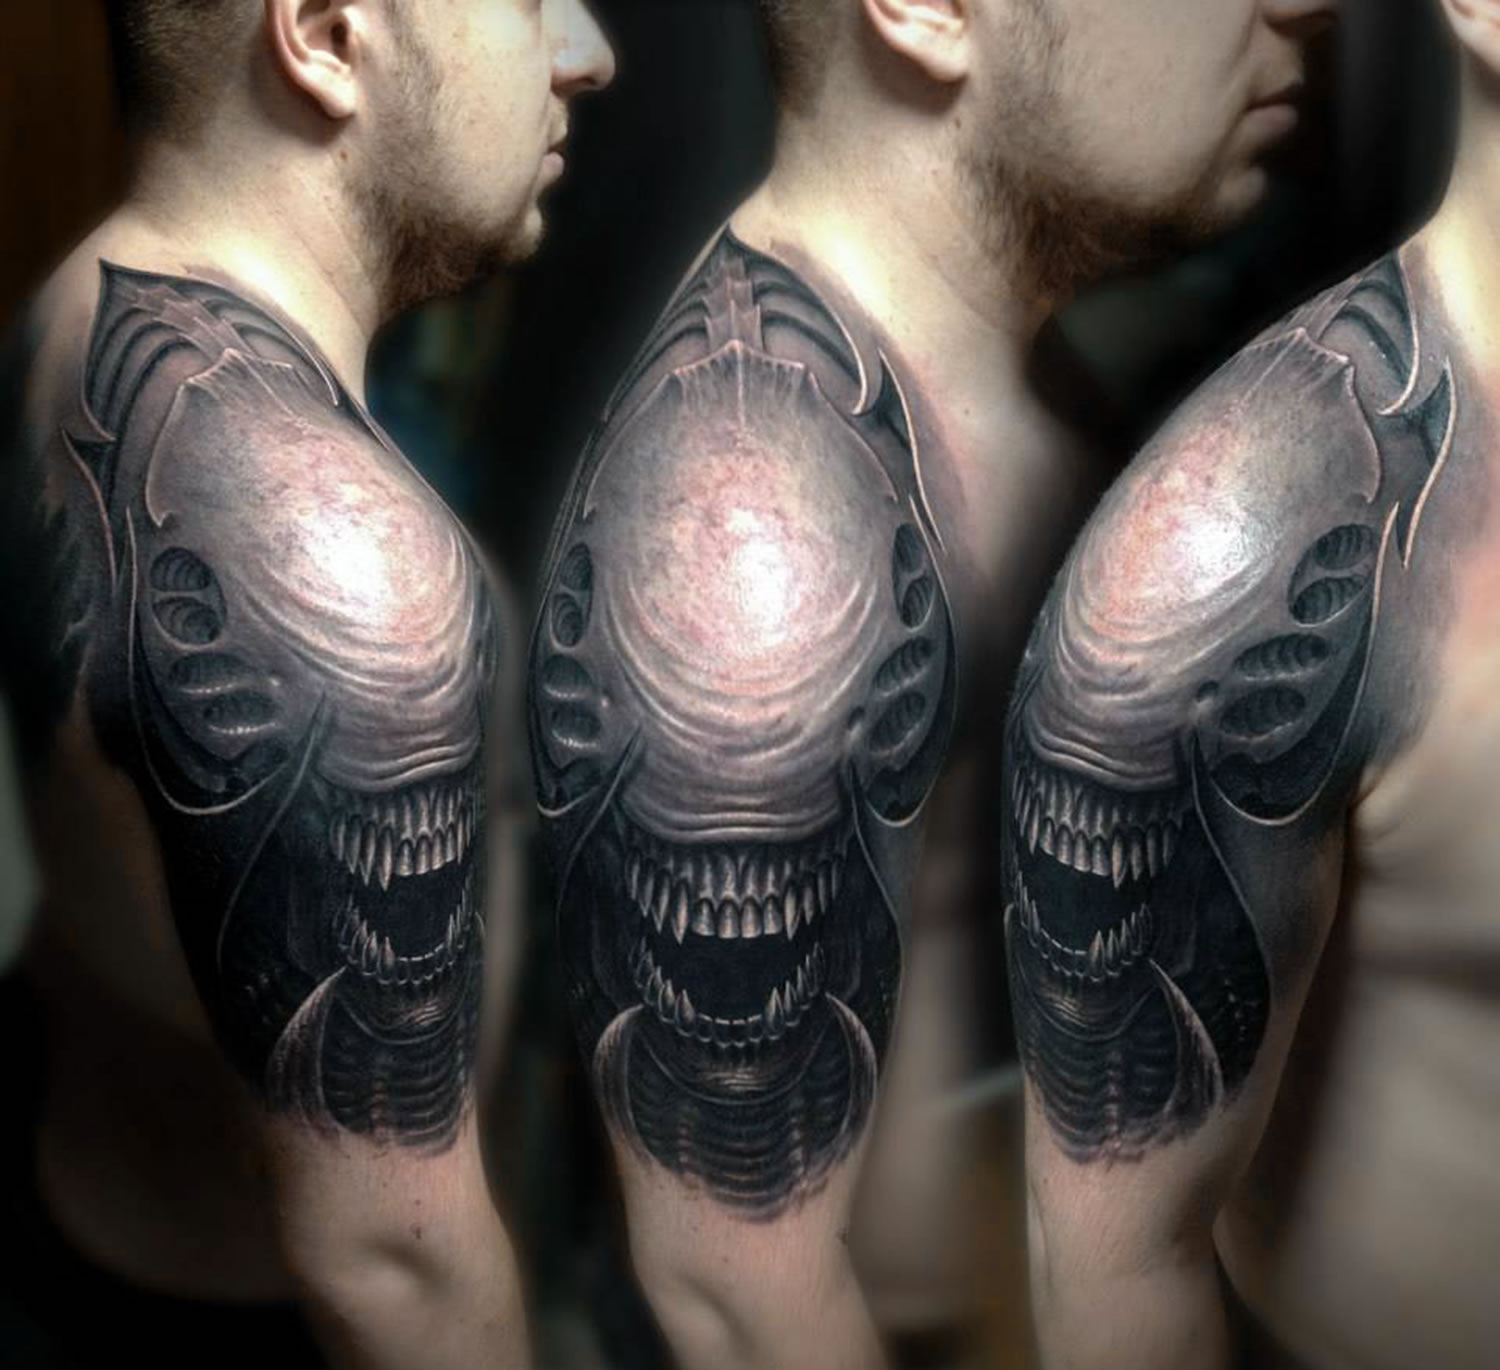 alien movie creature tattooed on arm, giger influence